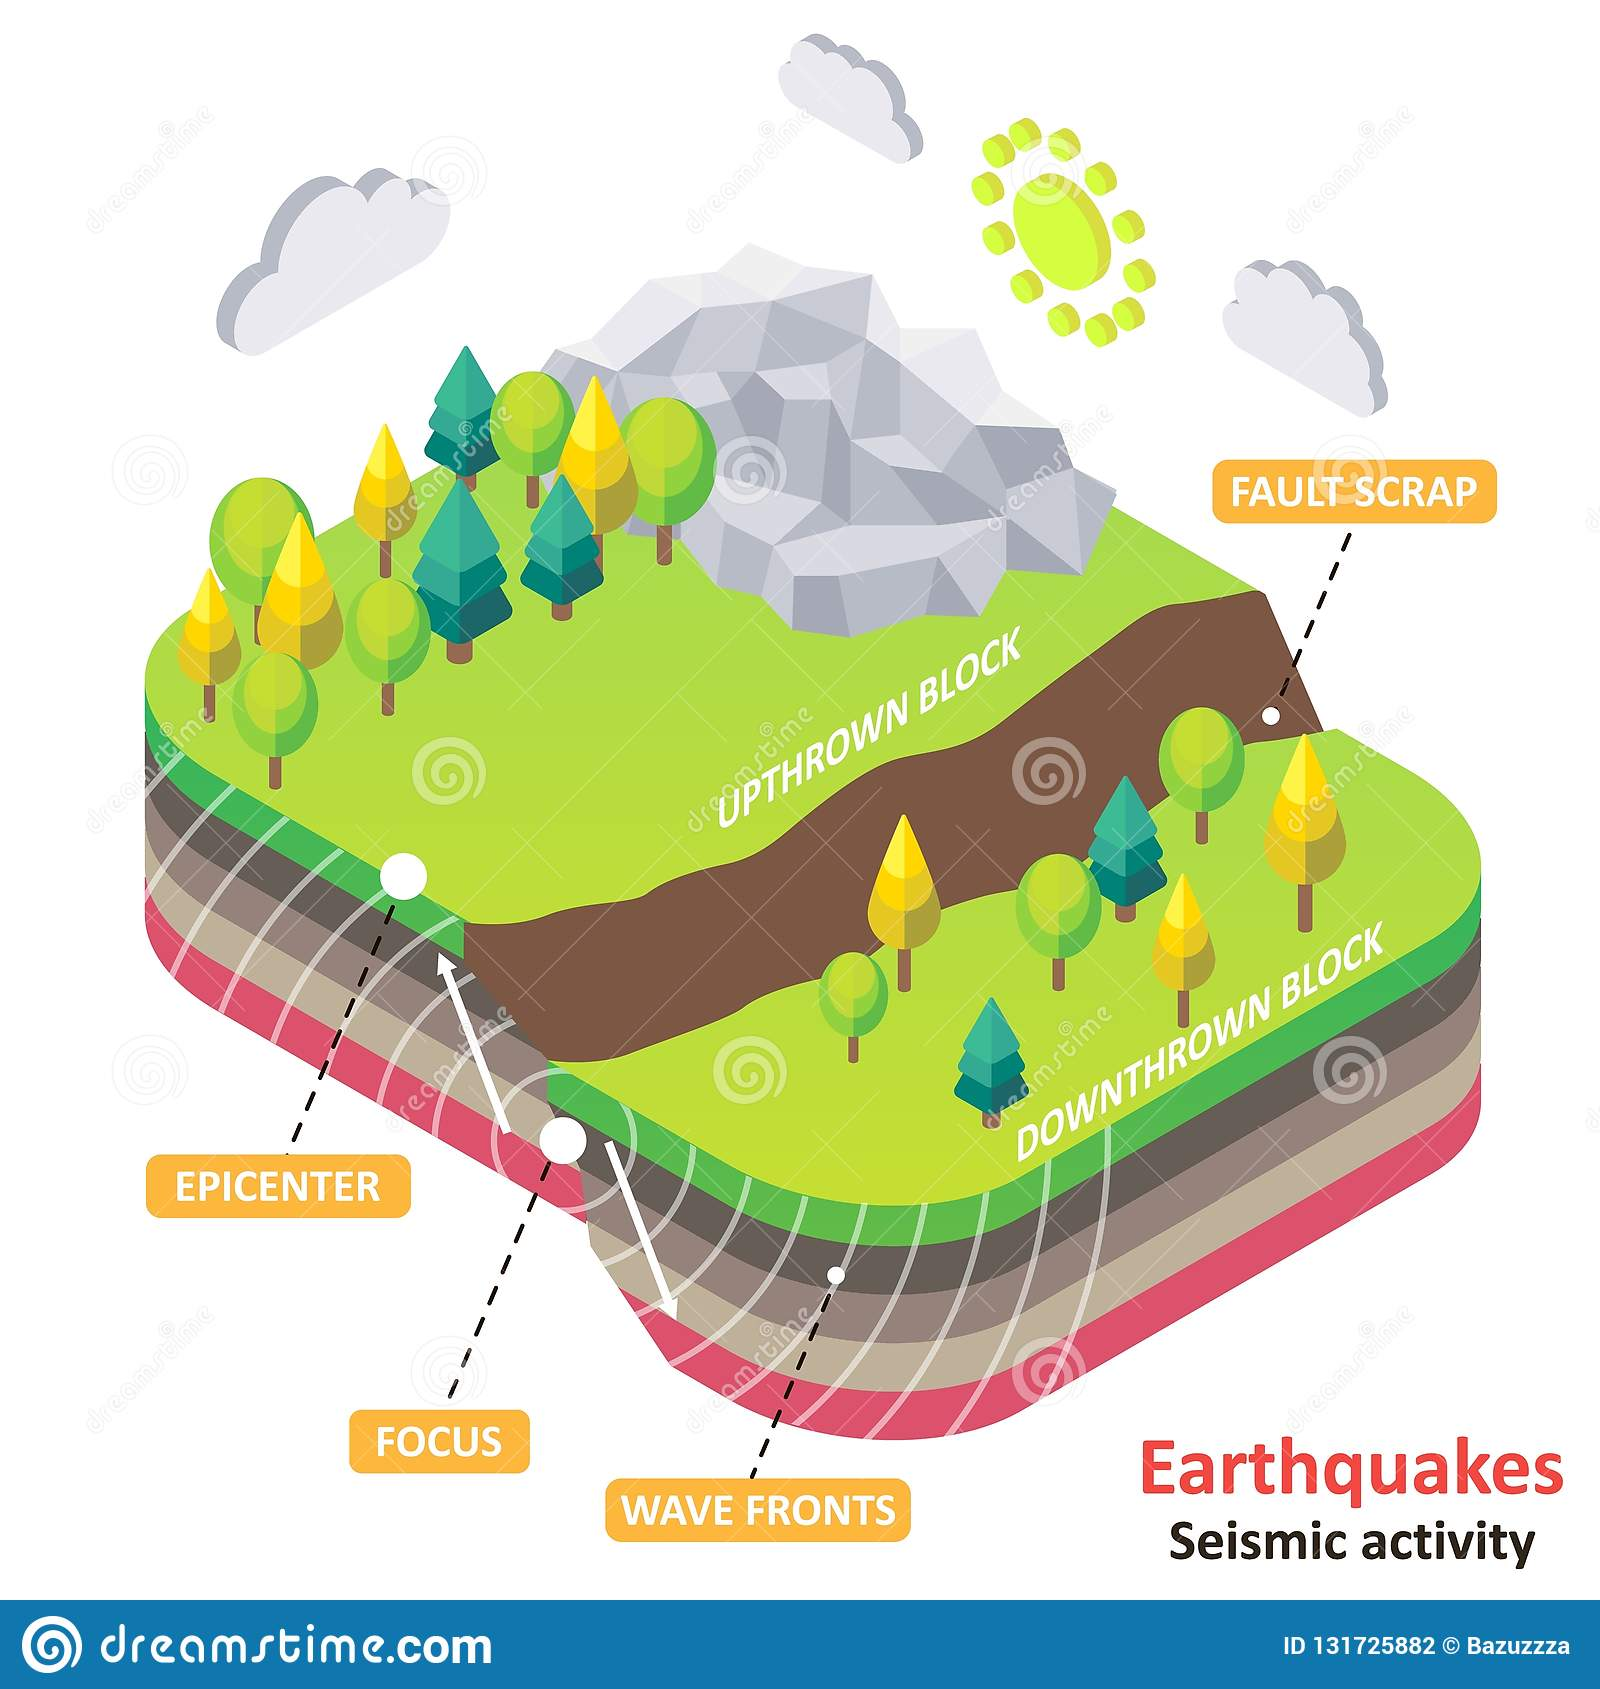 earthquake diagram  vector isometric earth fault scrap with epicenter,  focus and wavefronts  natural disasters and seismic activity concept for  educational